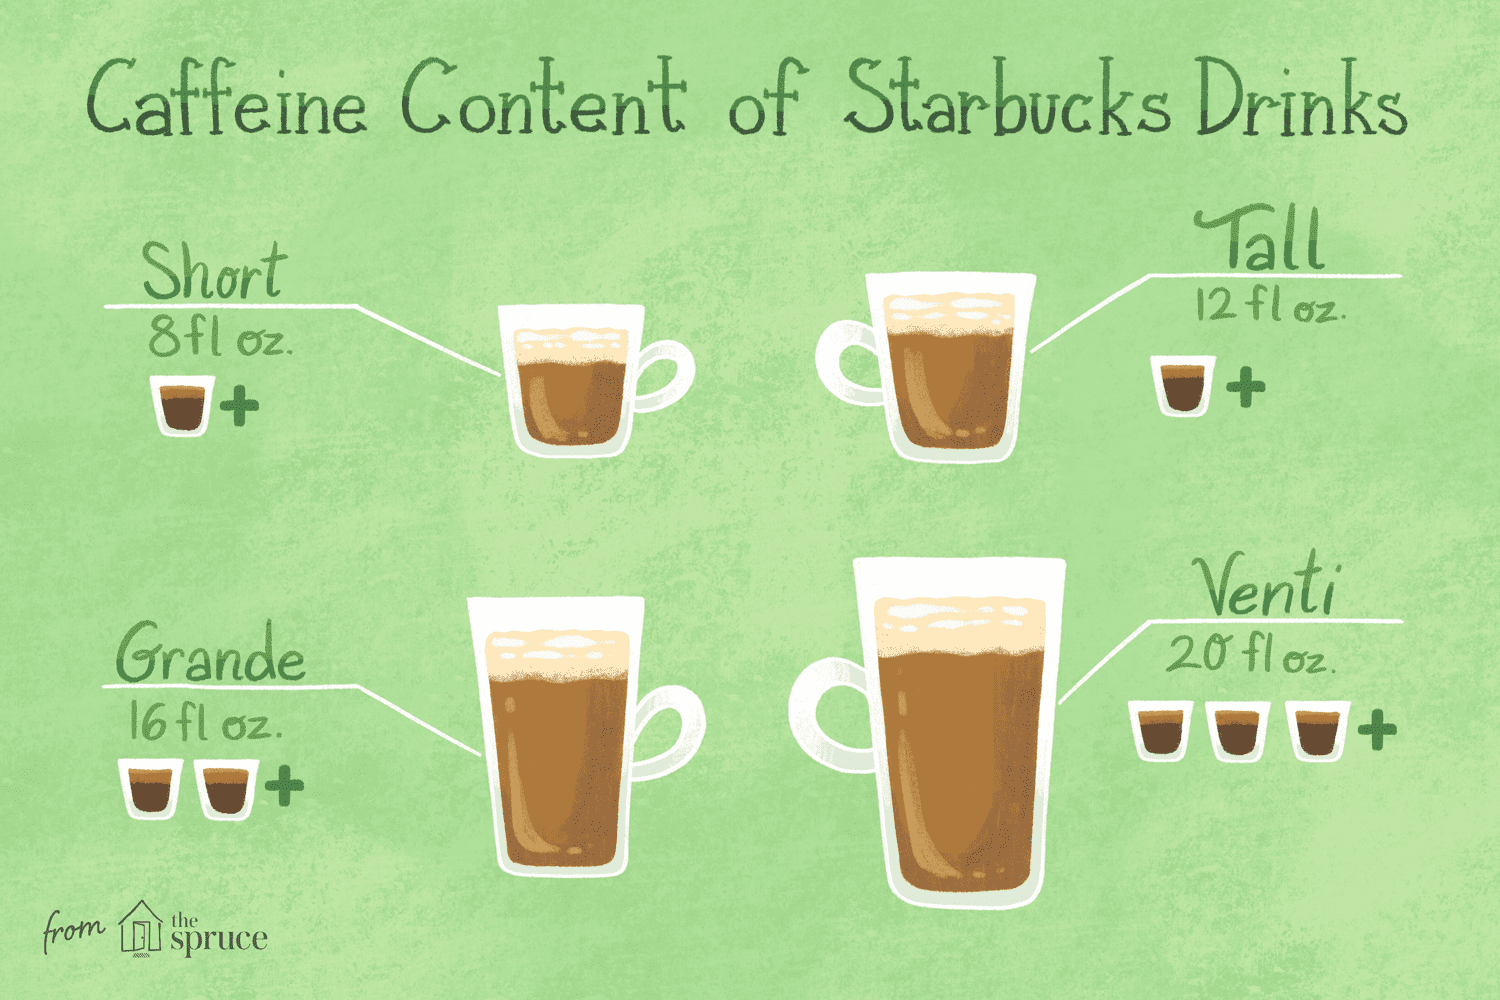 How Many Milligrams Of Caffeine In Starbucks Iced Coffee